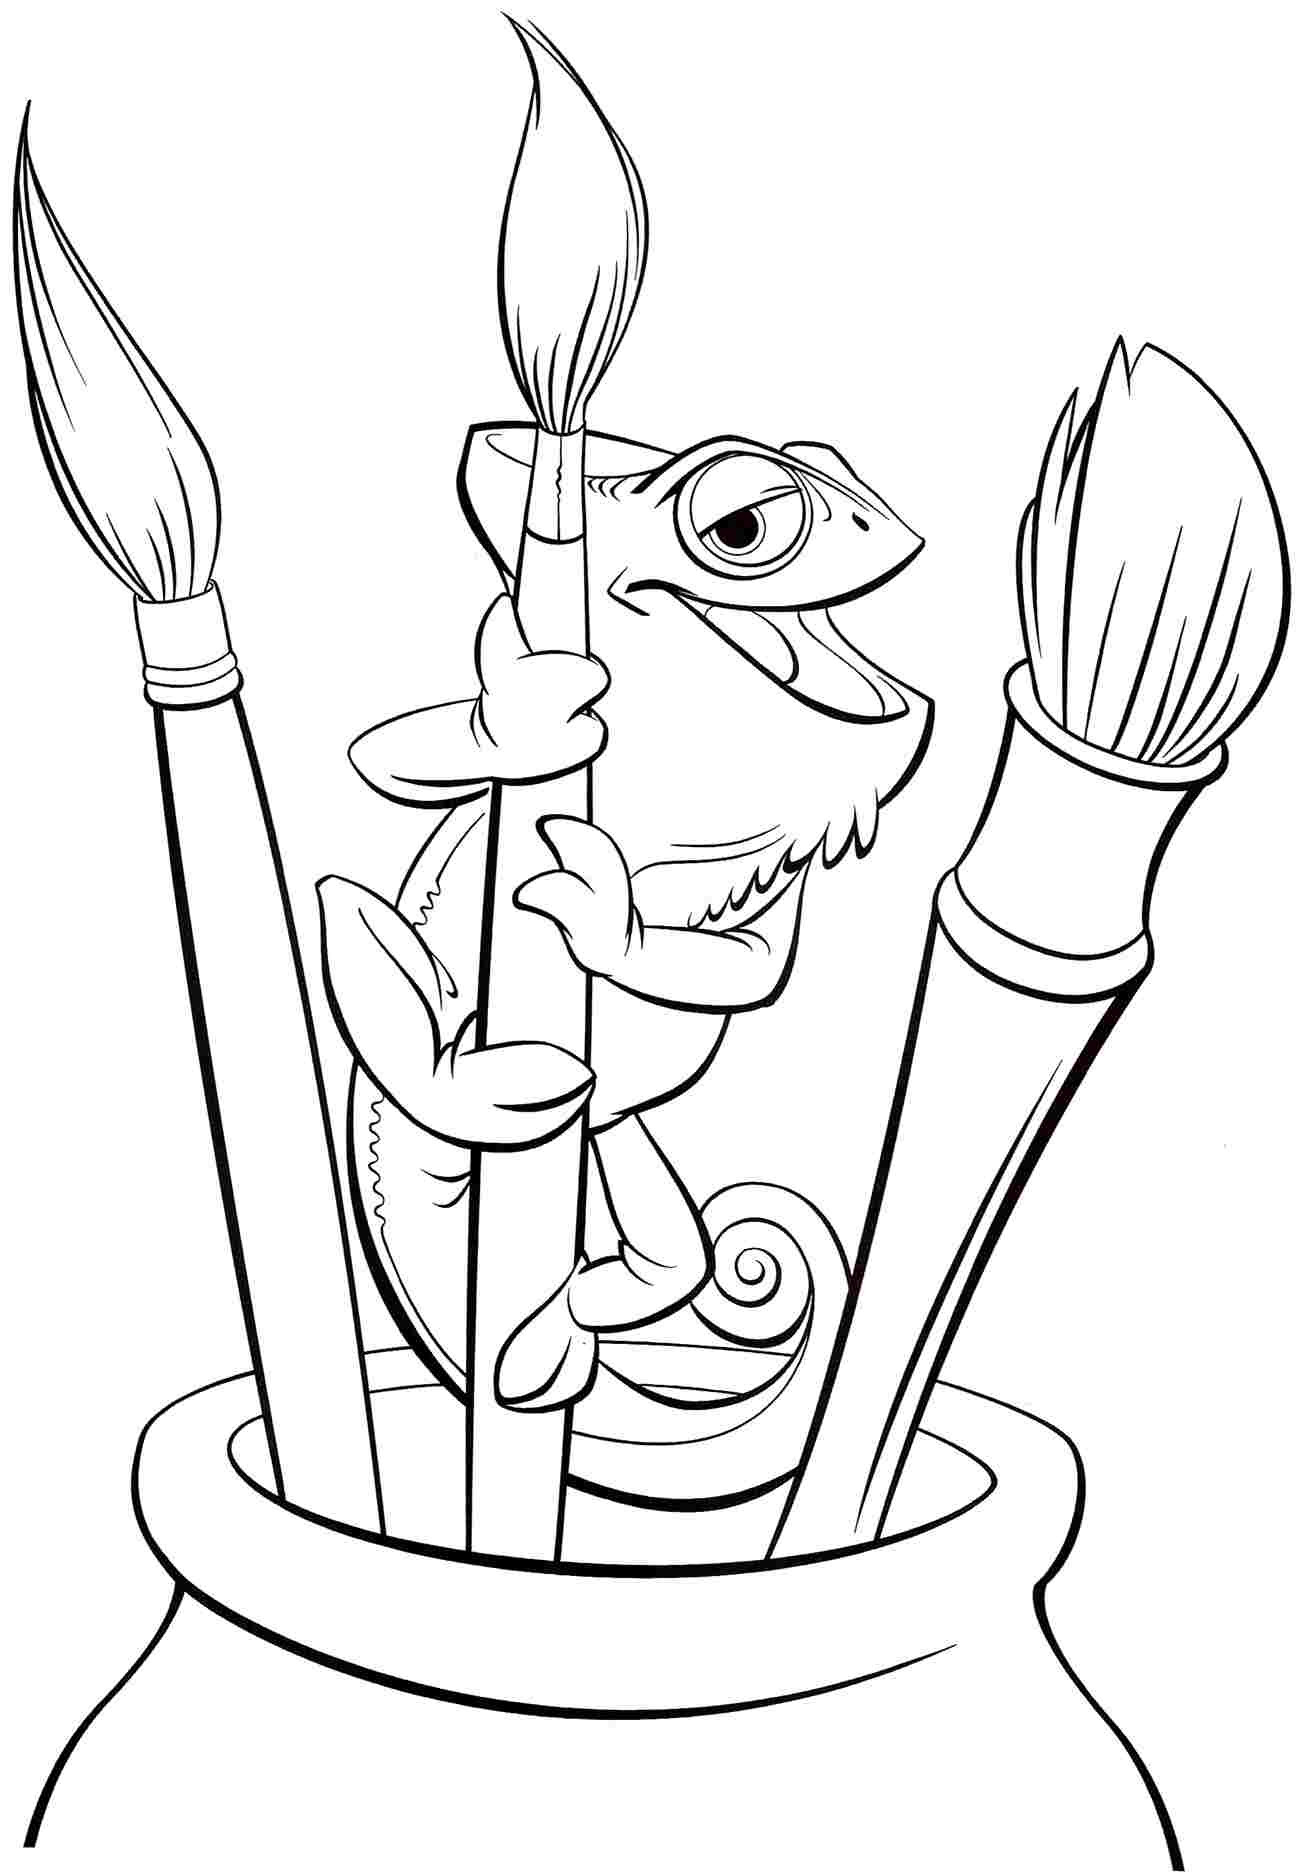 1310x1875 Tangled Coloring Pages If You Want To Print The Disney Princess